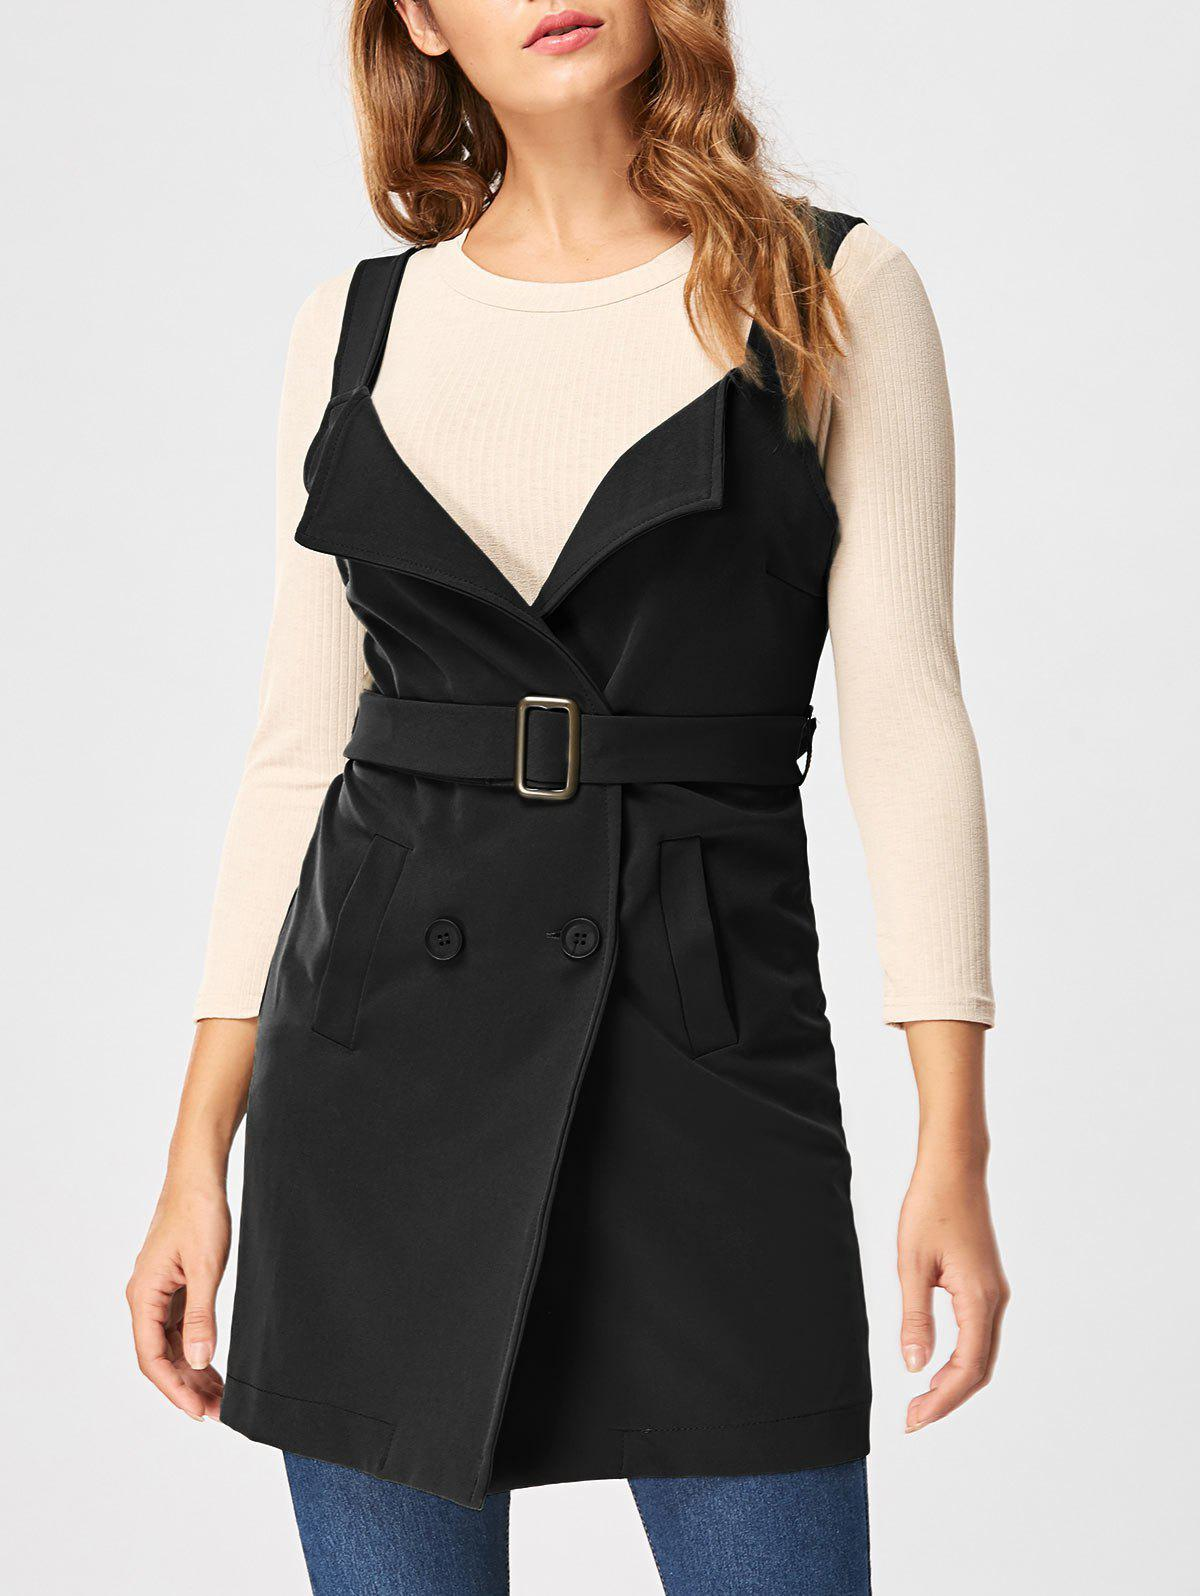 Vertical Pockets Waistcoat with Belt - BLACK 2XL